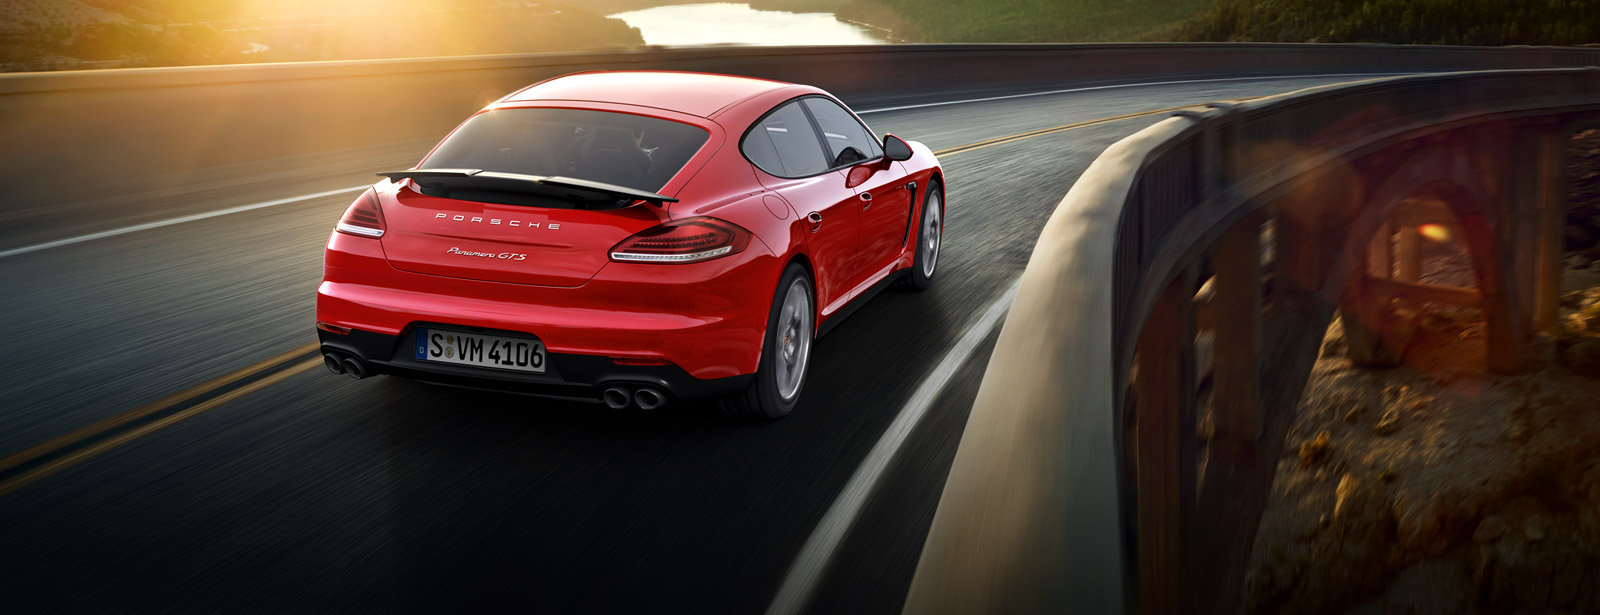 2016 Porsche Panamera GTS on the road